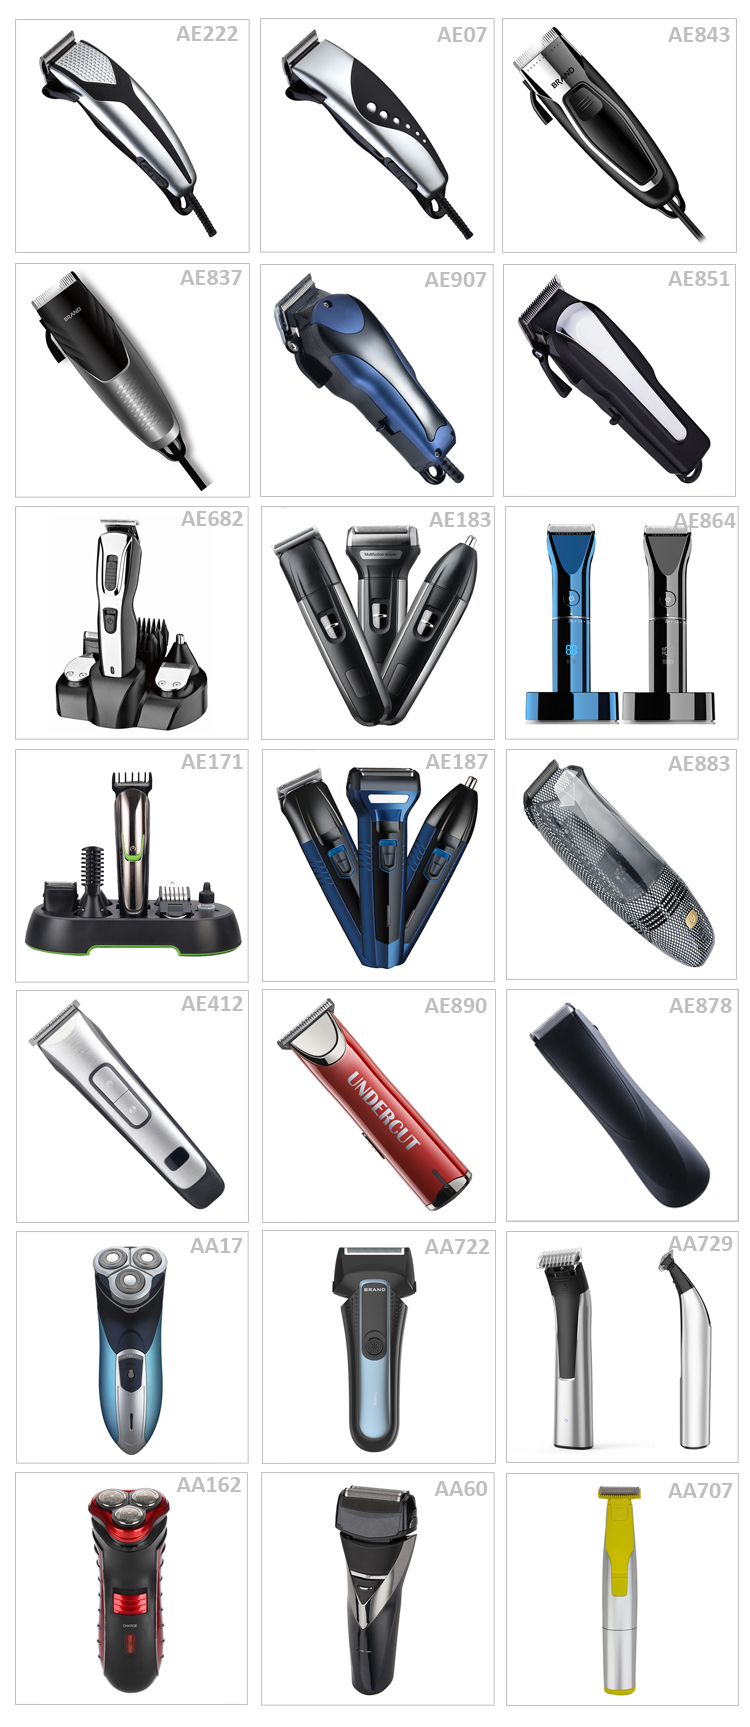 Digital barber mens cordless wholesale hair trimmer electric hair clipper set professional